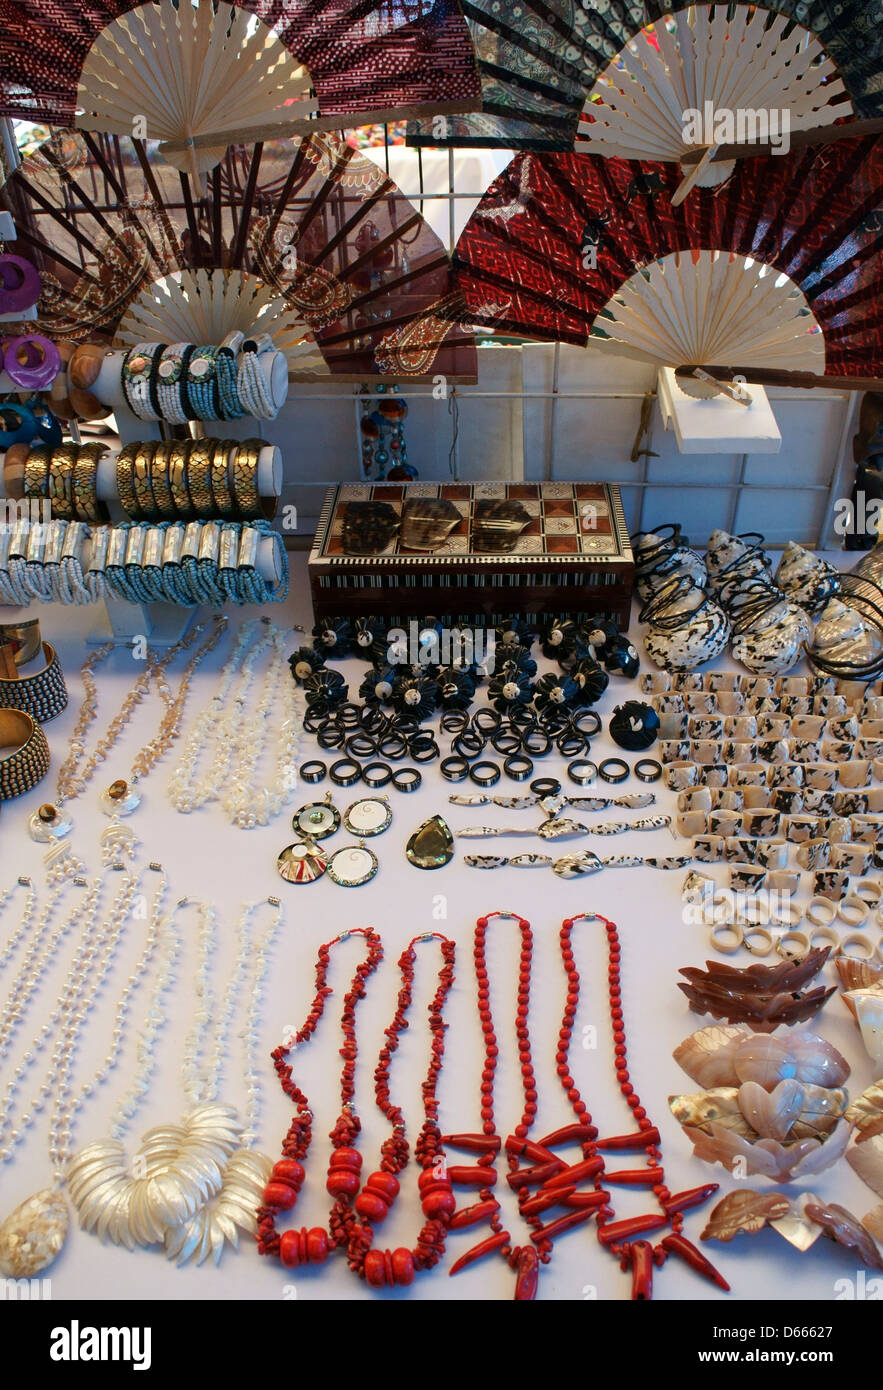 Sea Shell Jewelry And Fans In Mercado 28 Souvenirs And Handicrafts